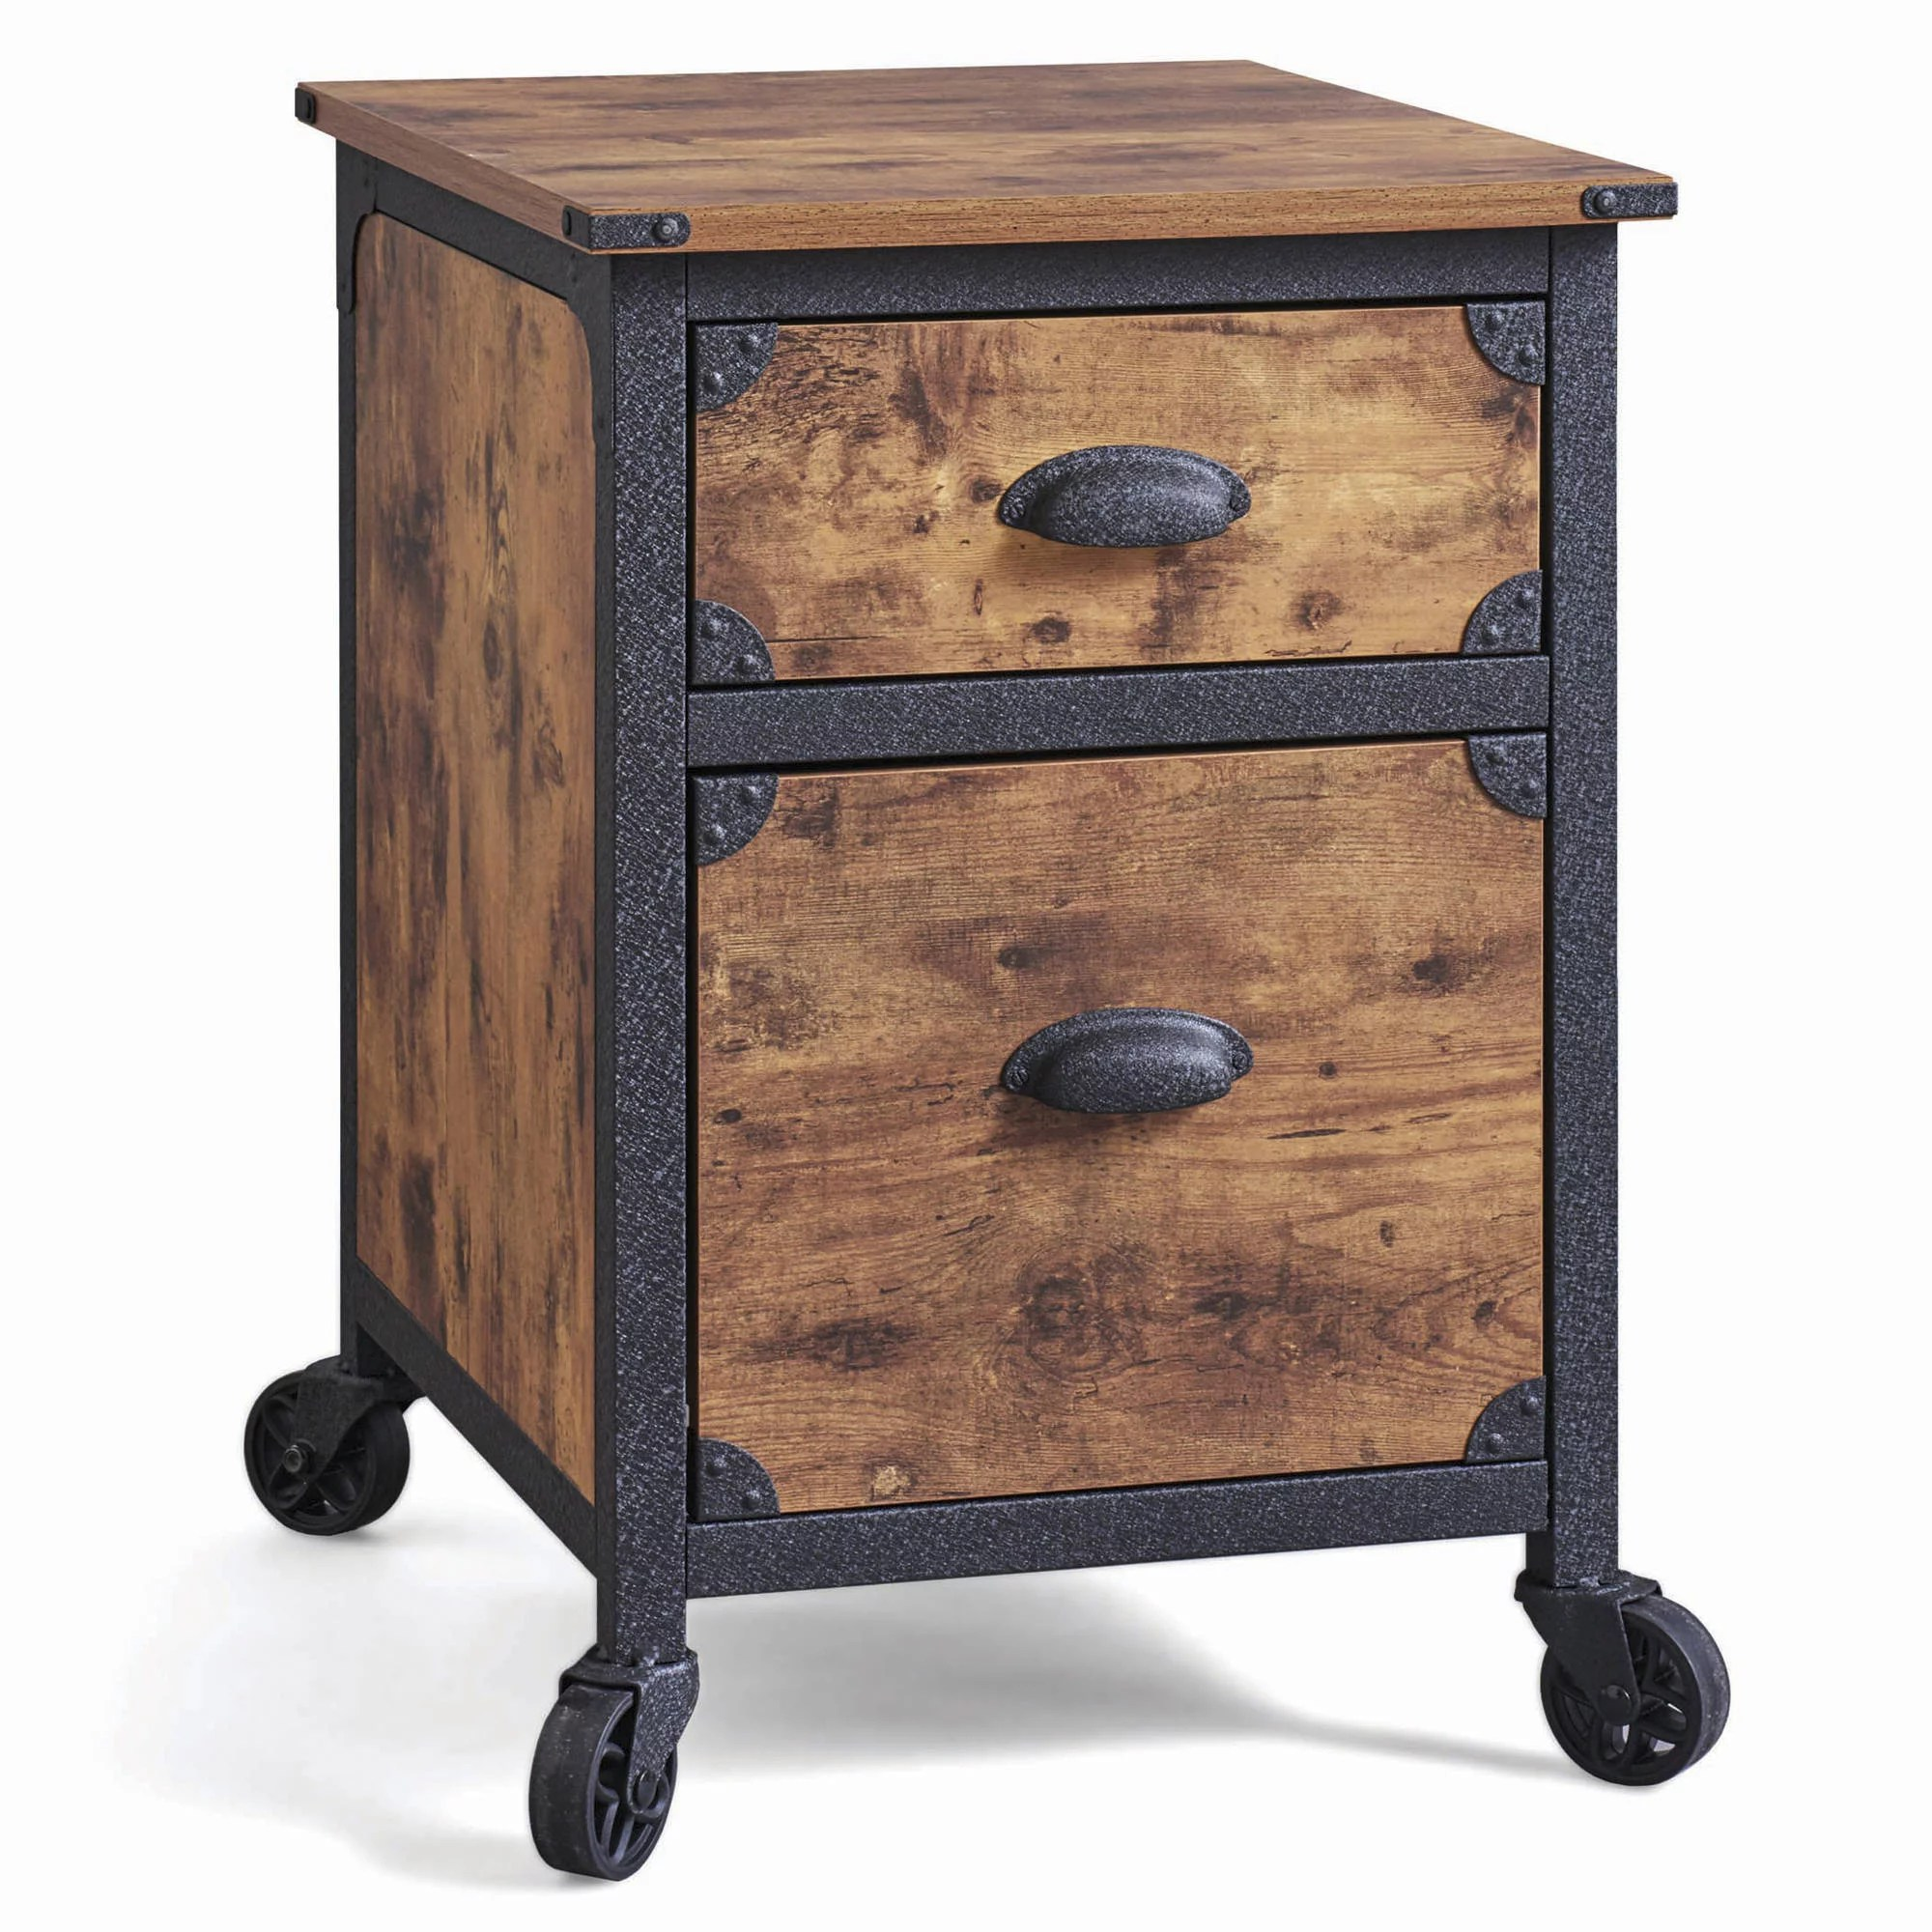 Better Homes Gardens 2 Drawer Rustic Country File Cabinet Weathered Pine Finish Walmart Com Walmart Com